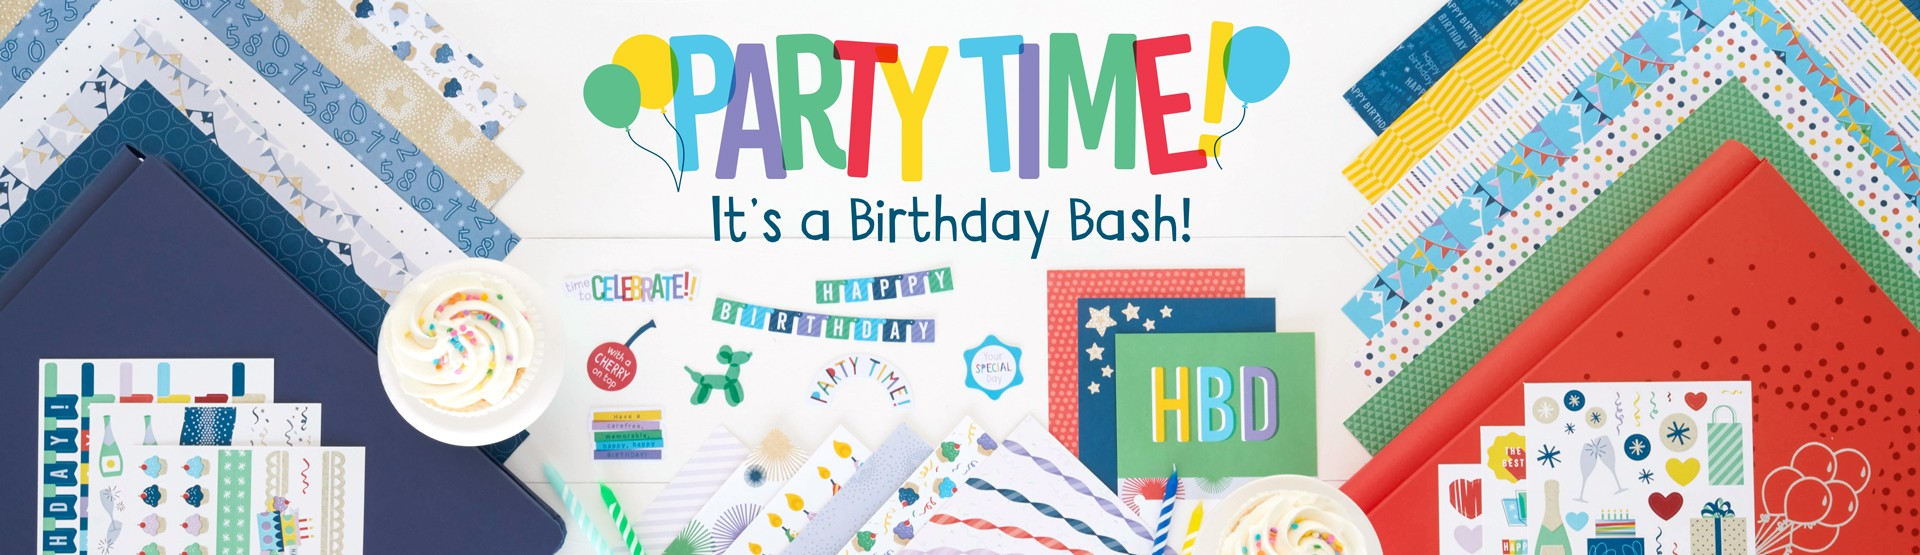 Birthday Scrapbooking Supplies: Party Time!